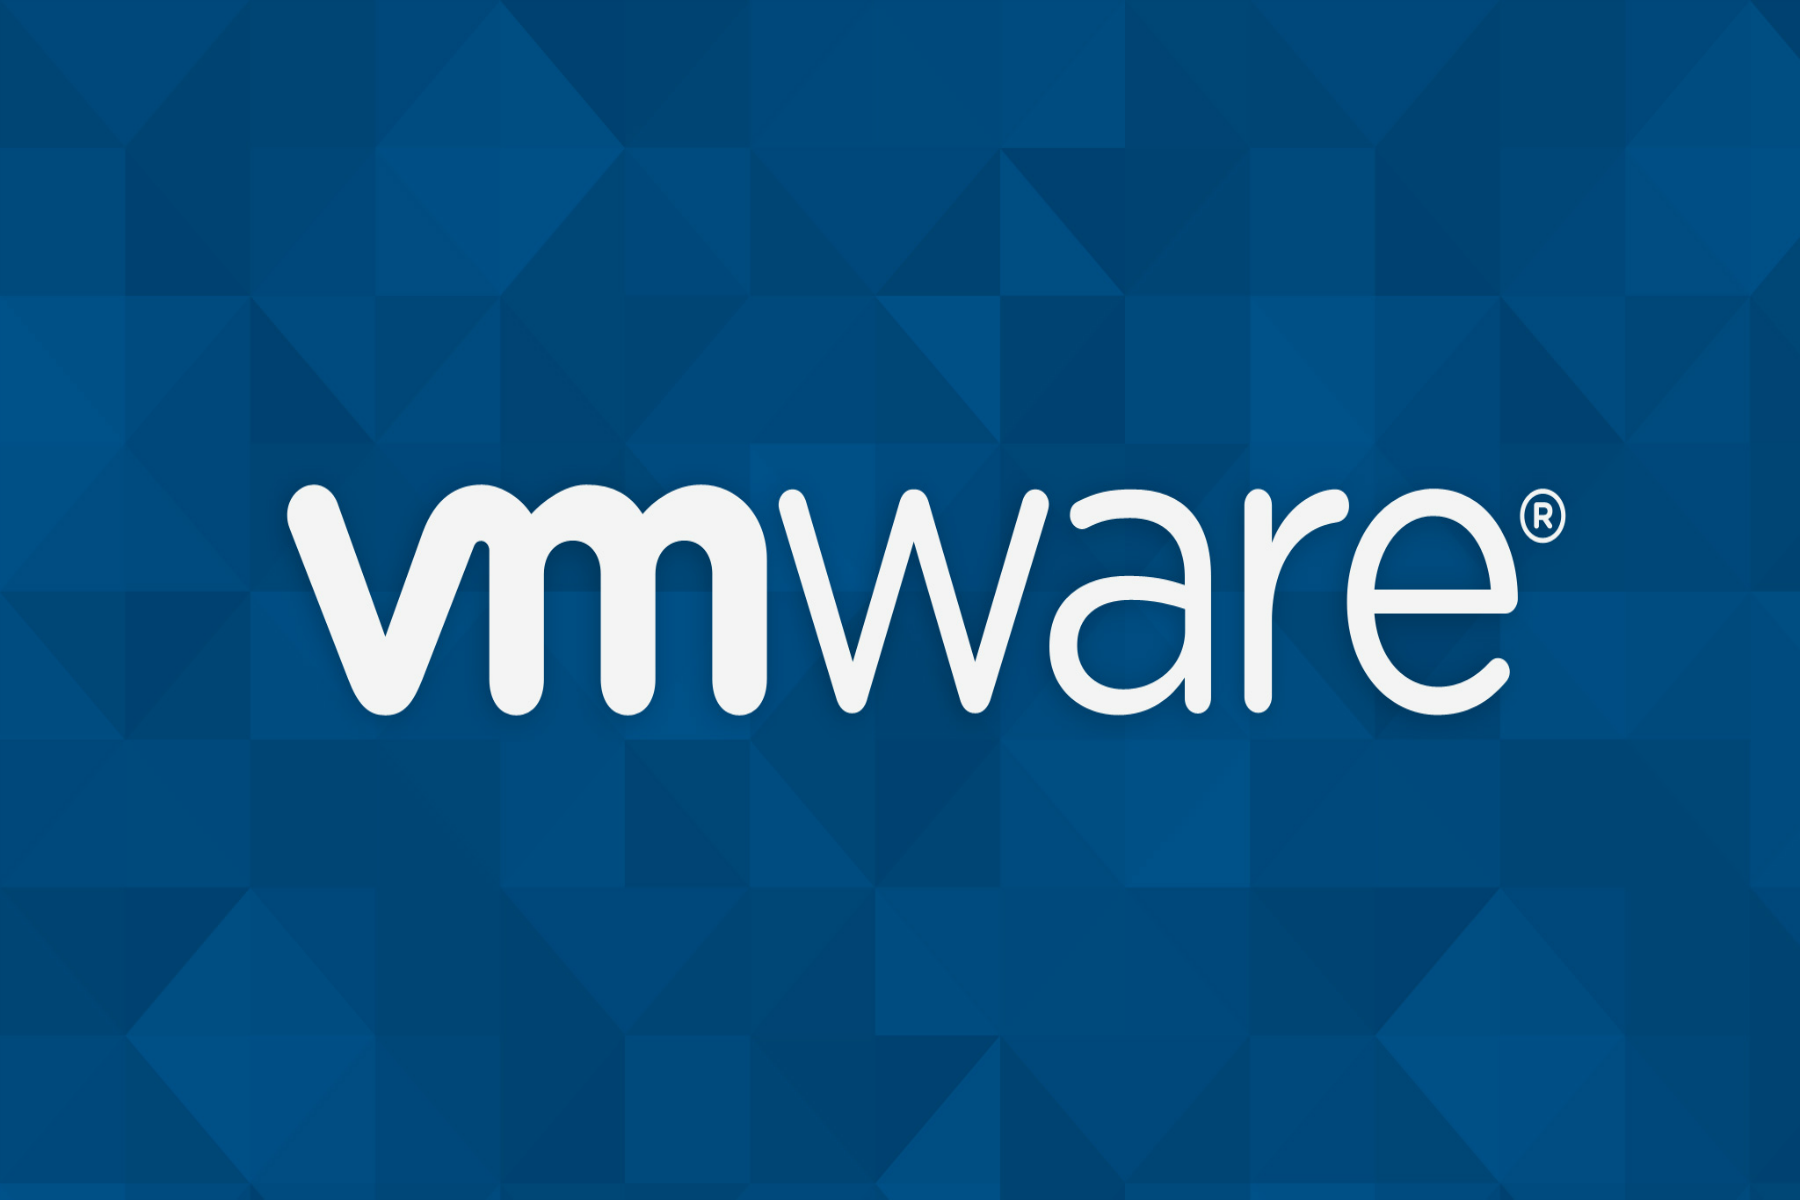 VMWARE Training in Chennai